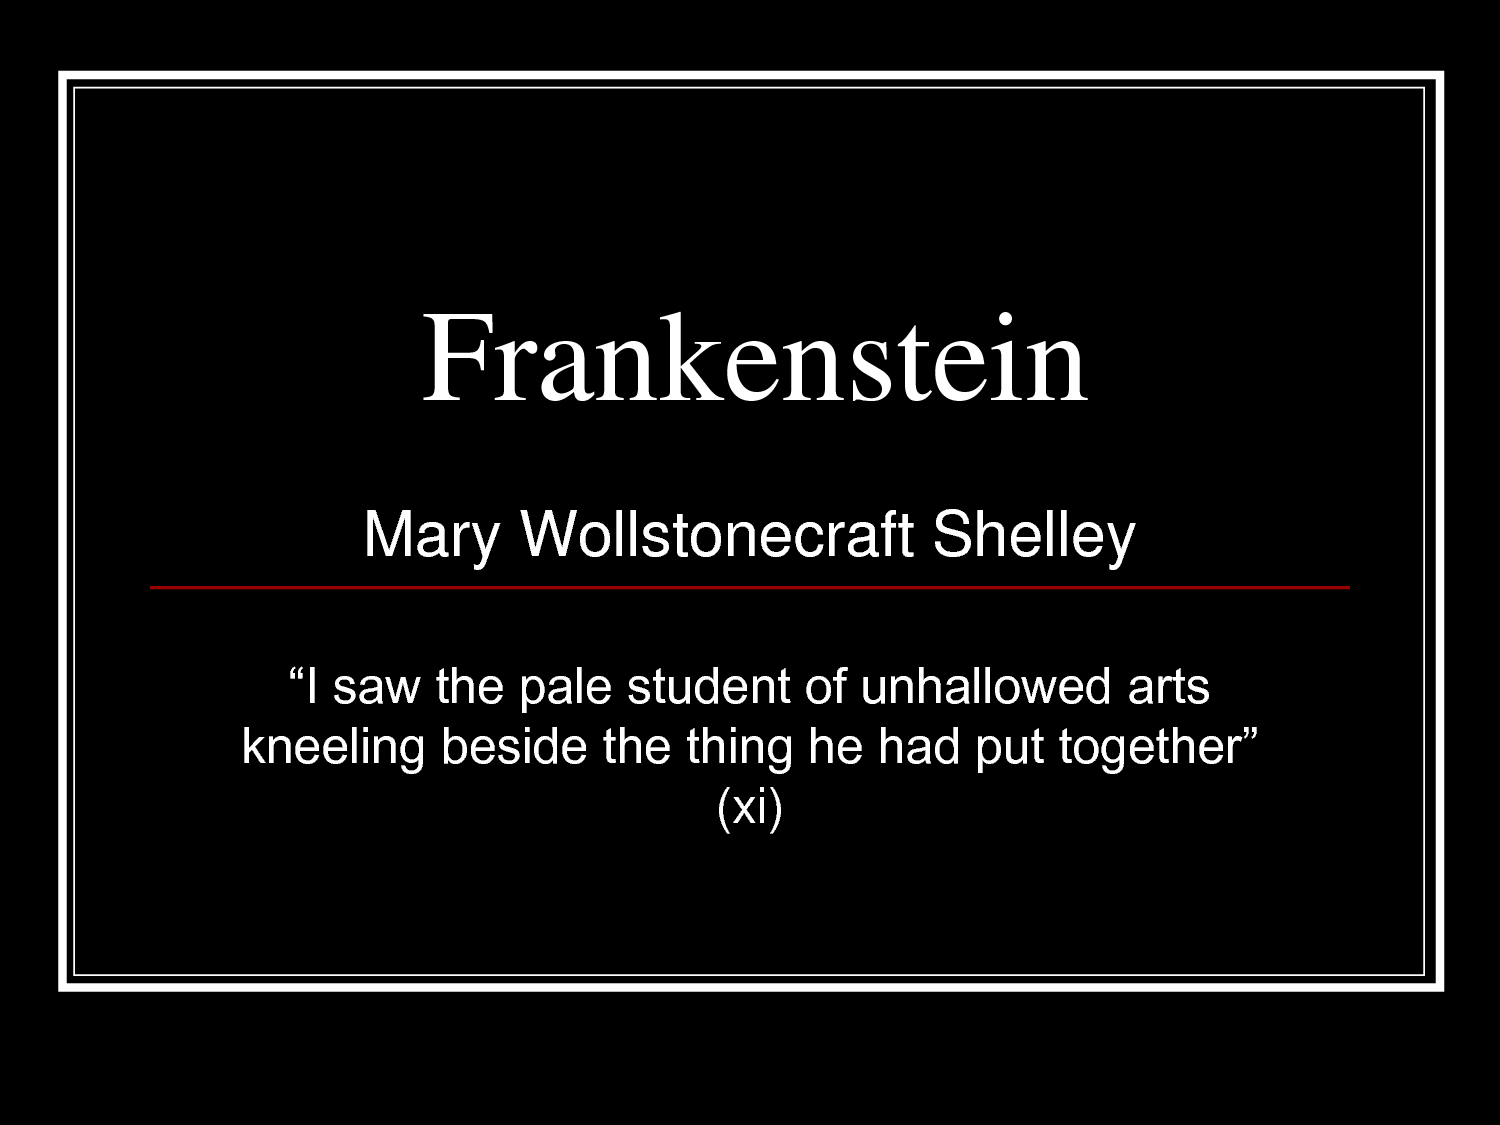 Quotes From Frankenstein Frankenstein  Paranormal Documentary  Authors  Pinterest